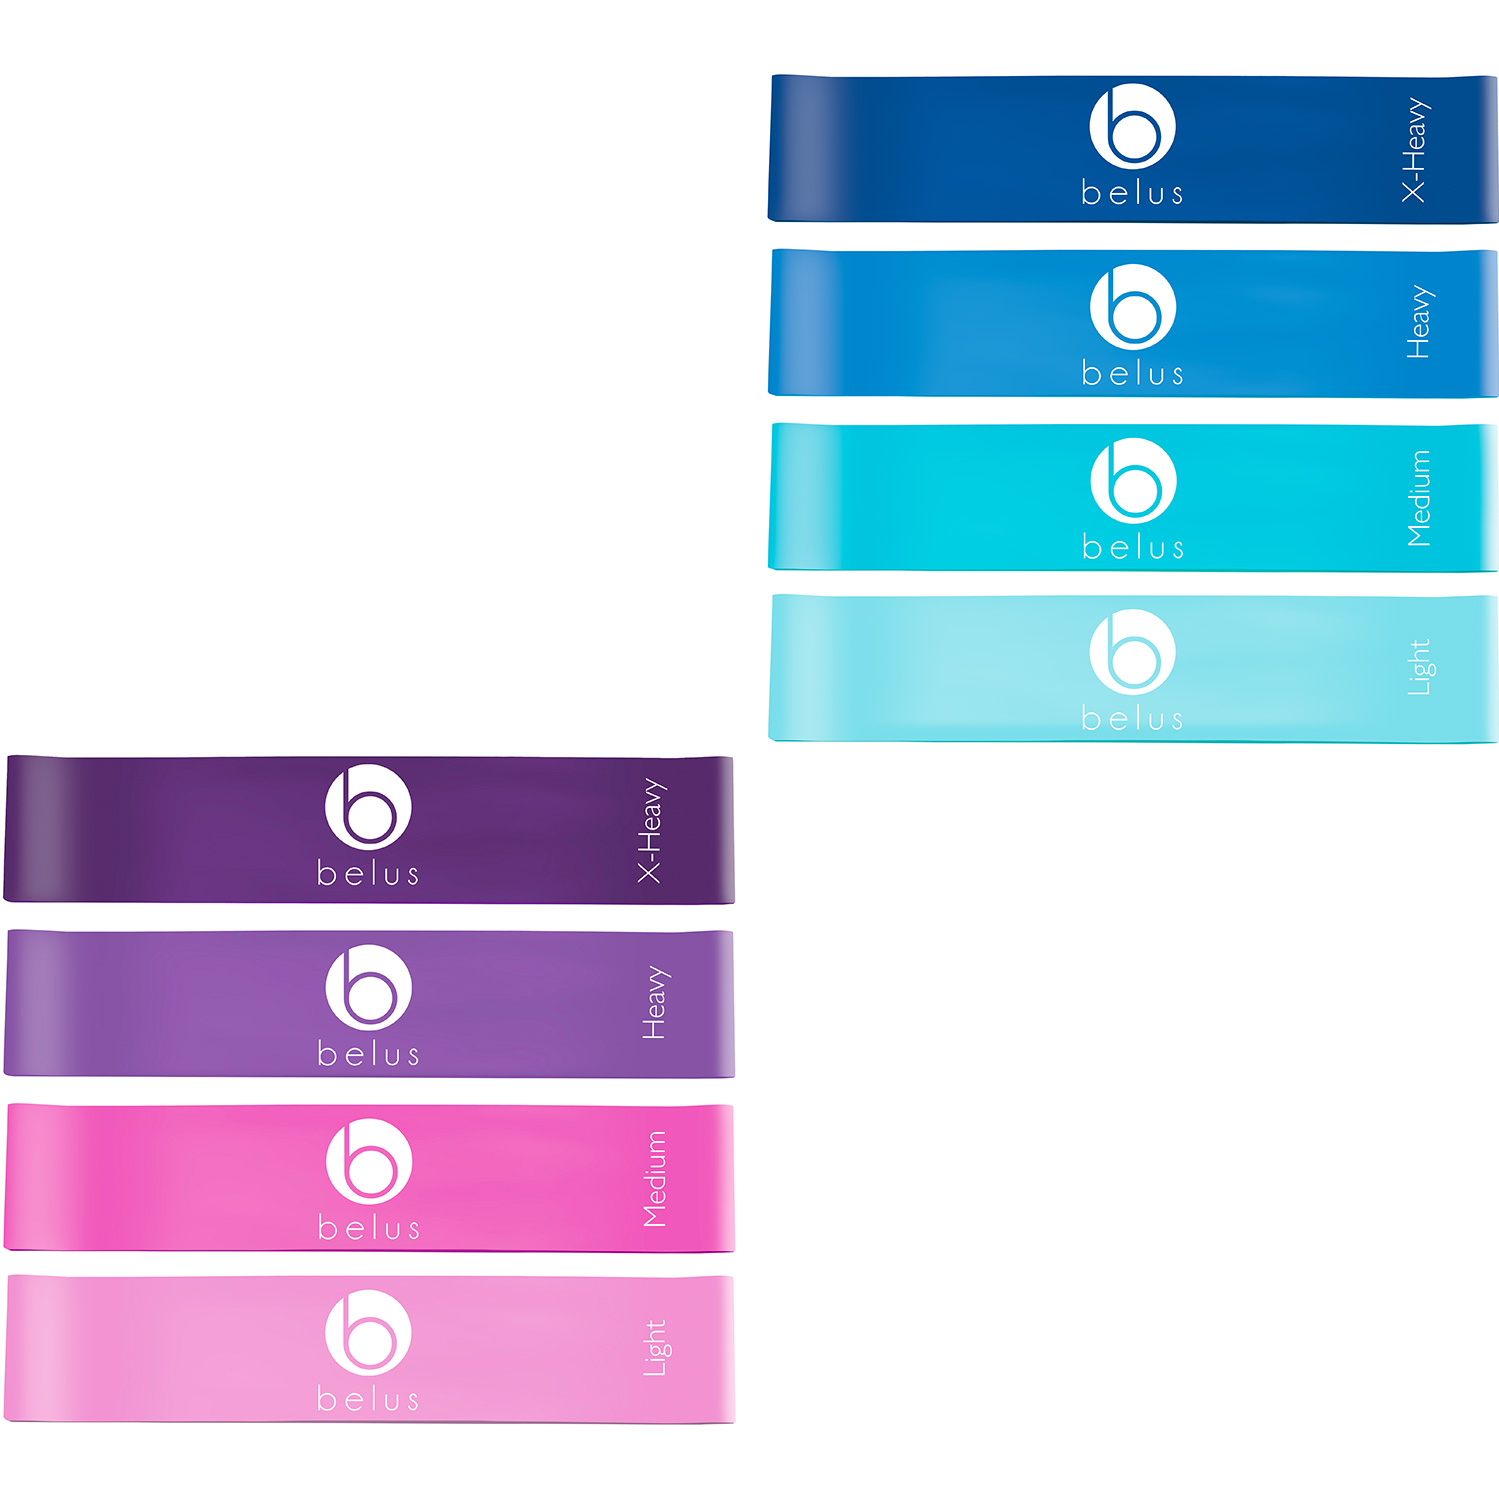 Blue and Pink Loop bands